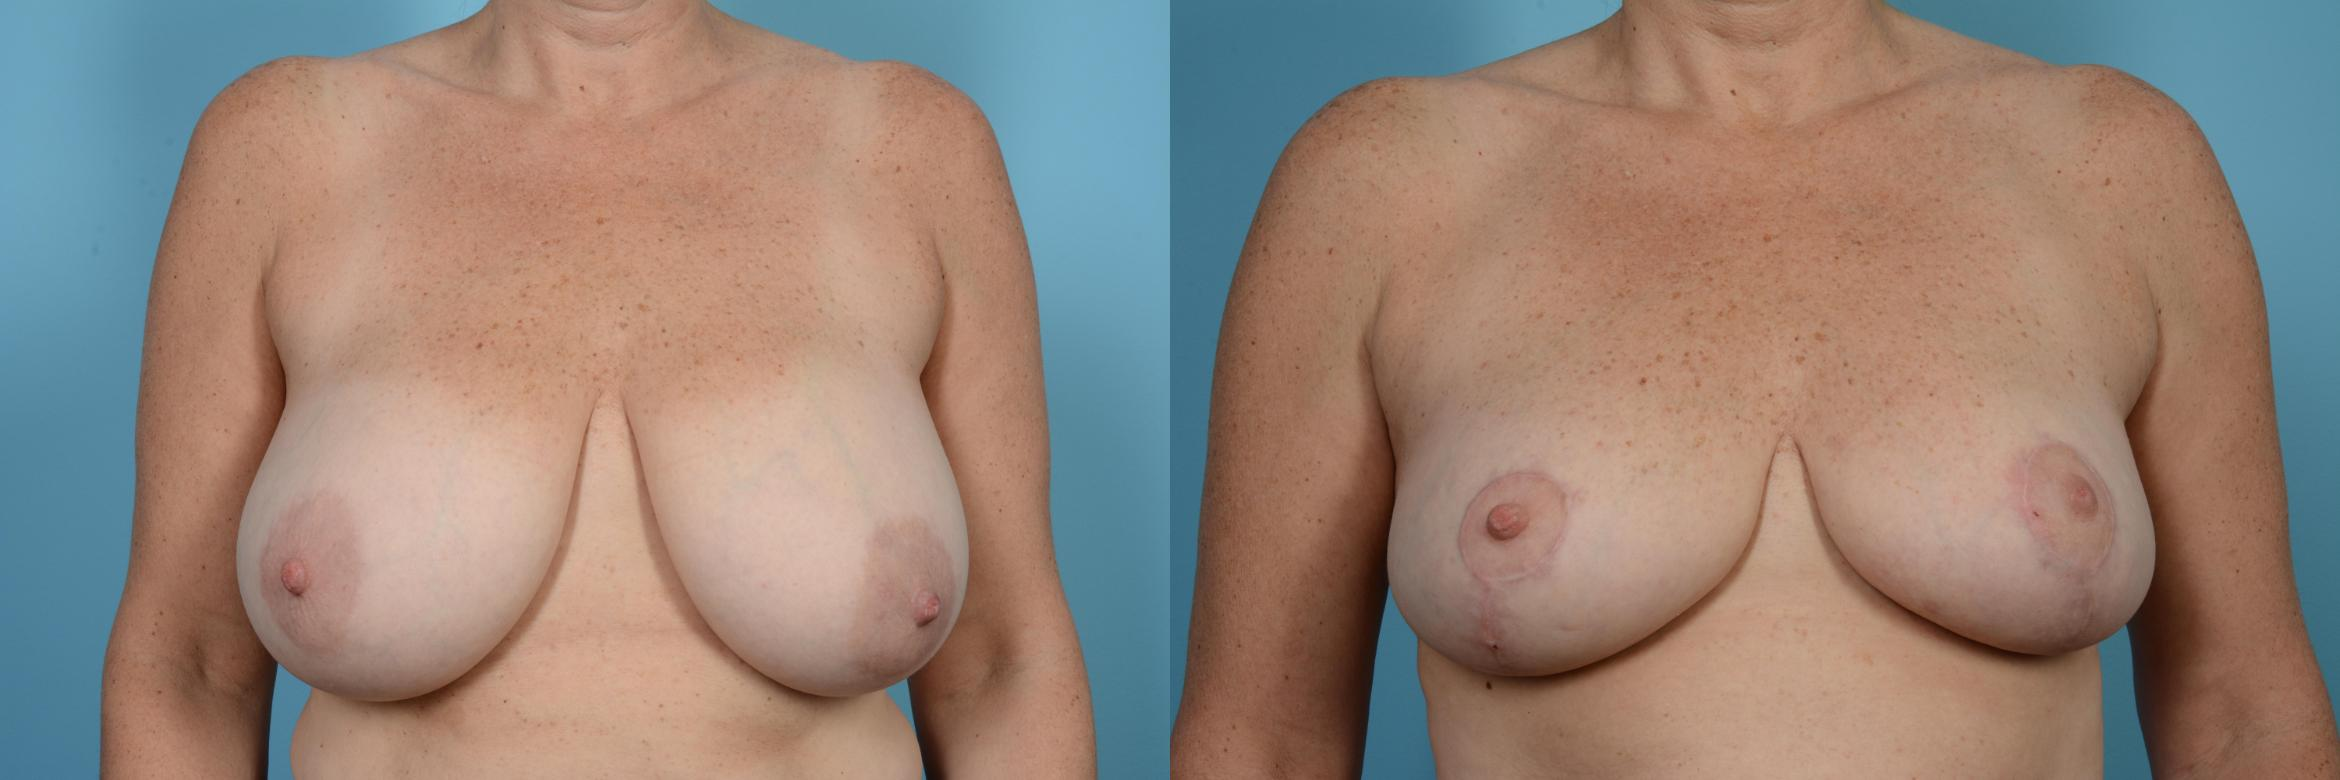 Breast Reduction Case 520 Before & After View #1 | Chicago, IL | TLKM Plastic Surgery